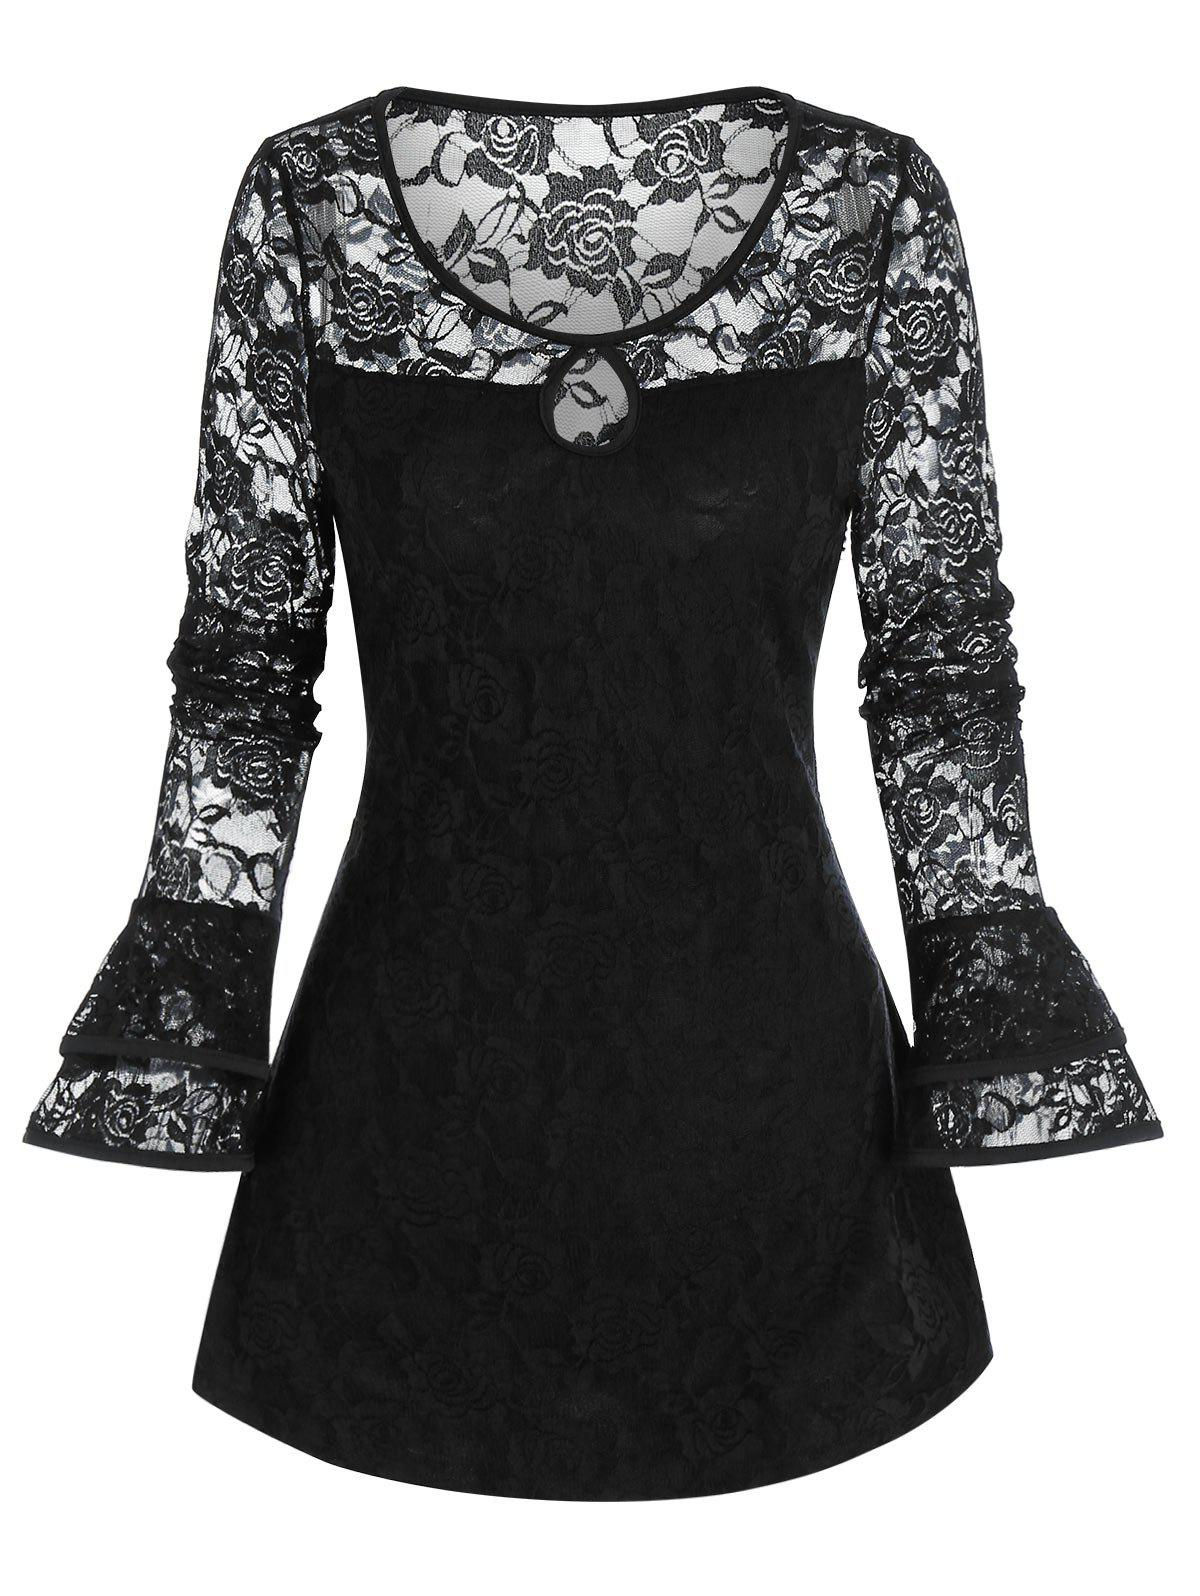 Gothic Lace Panel Keyhole Poet Sleeve Top - BLACK 3XL